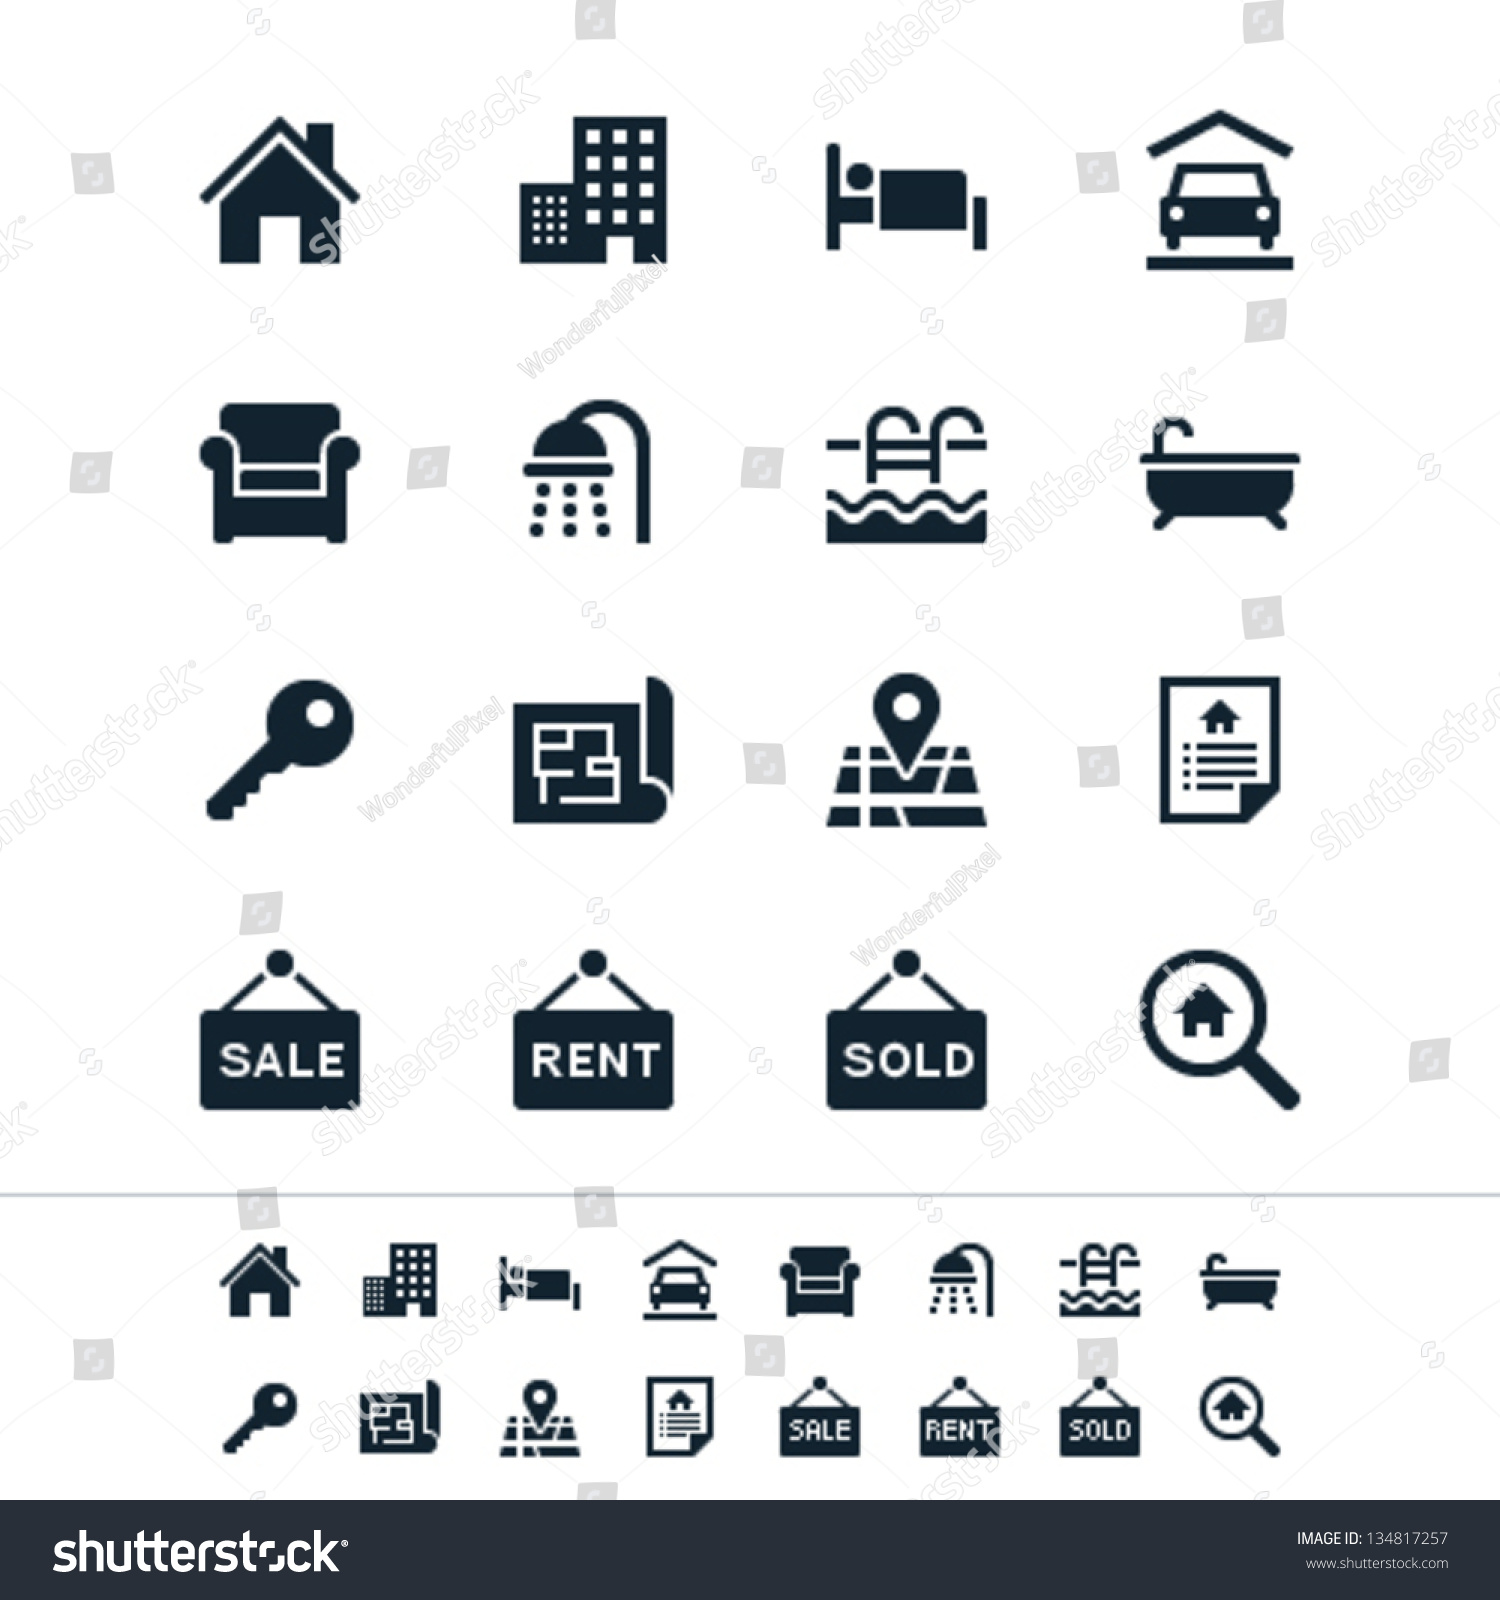 Image Result For House Plan Symbols